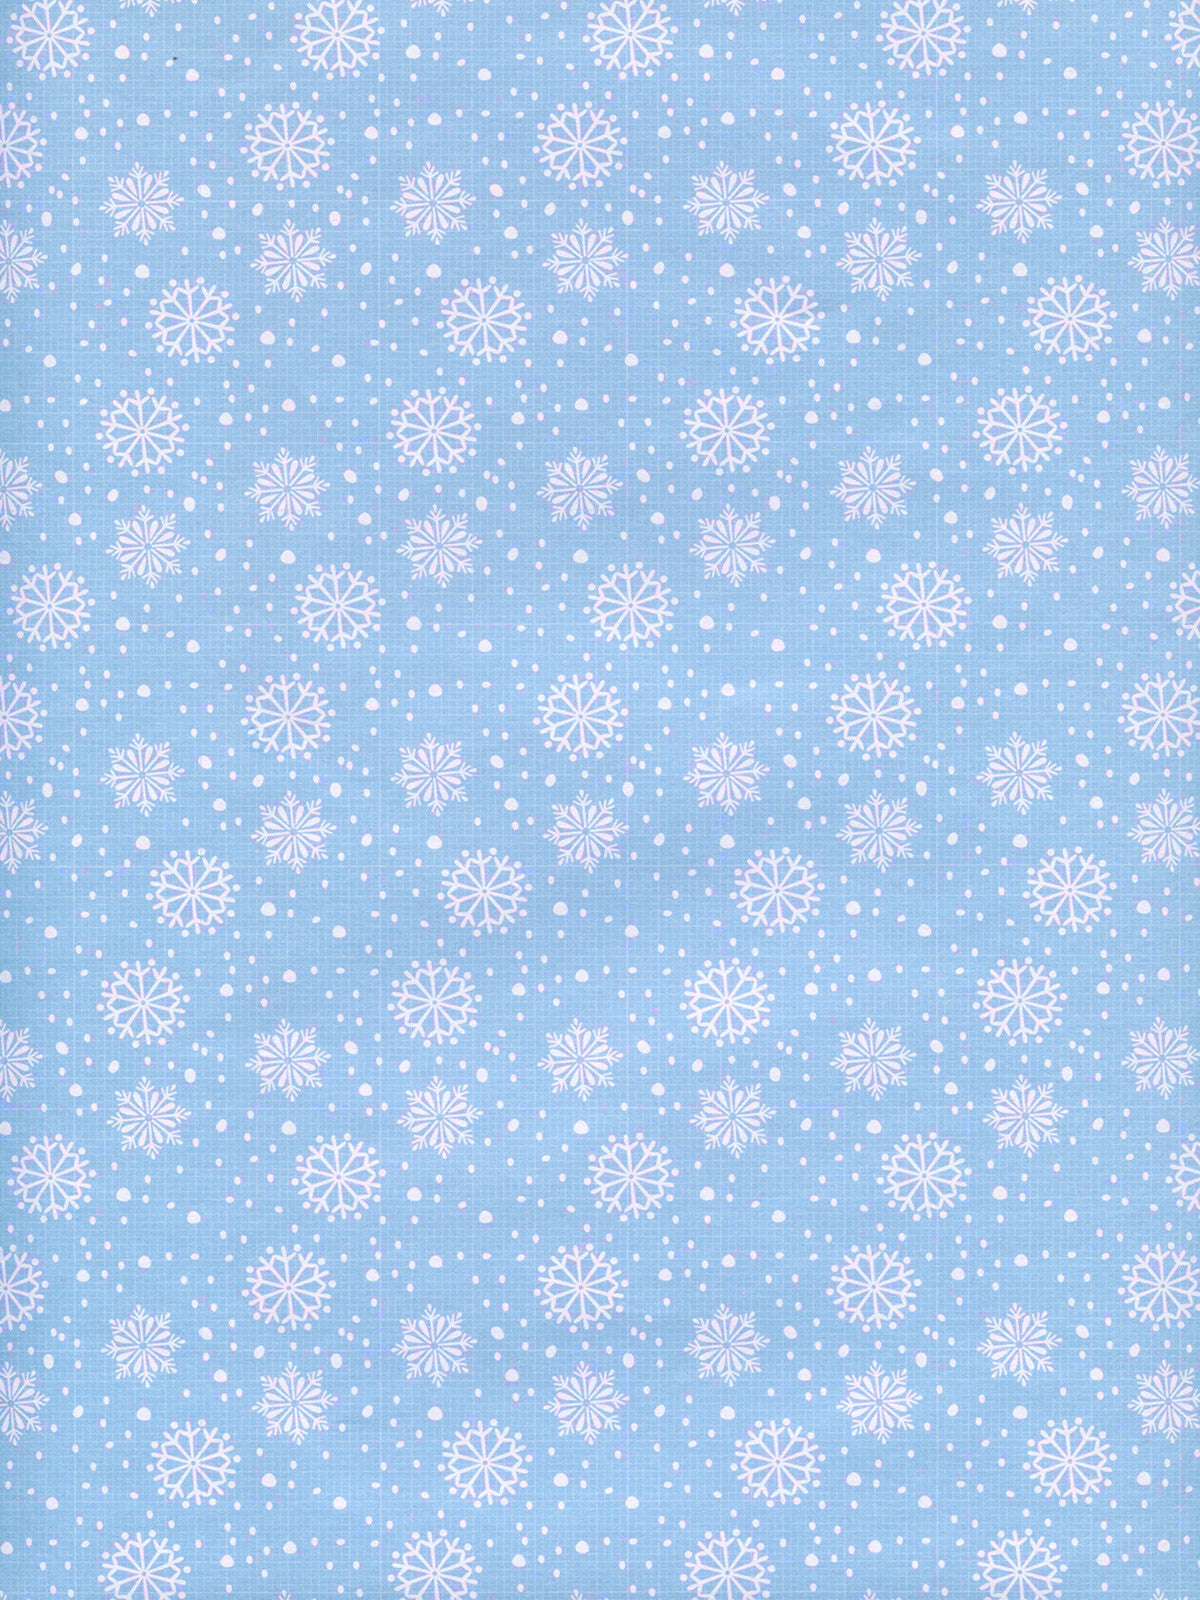 Perriwinkle Snow Photo Backdrop / 8097 - DropPlace